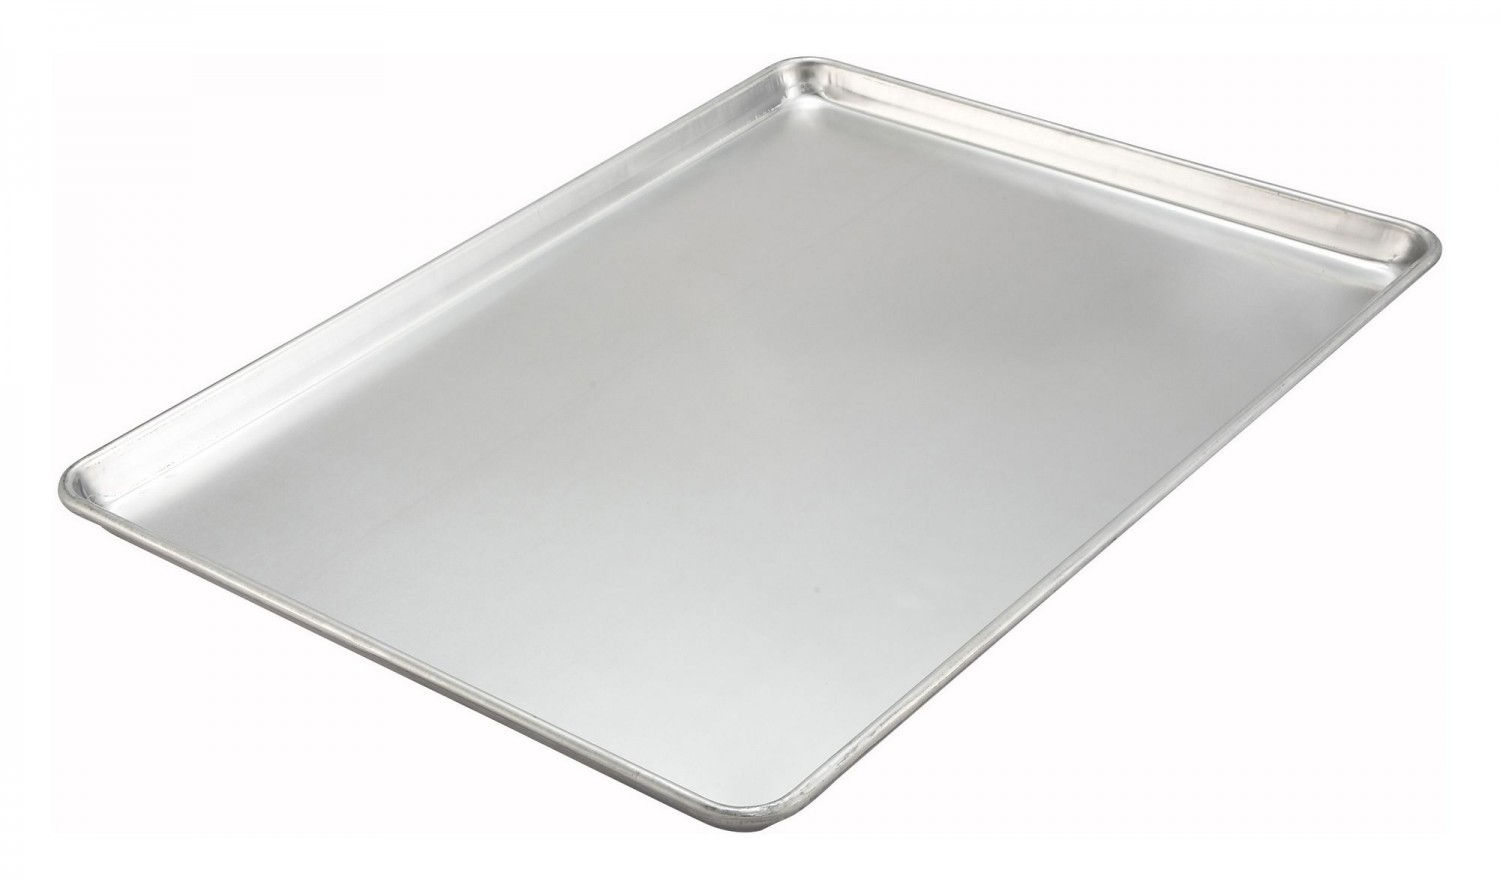 Winco ALXP-1826 Full Size Aluminum Sheet Pan 18